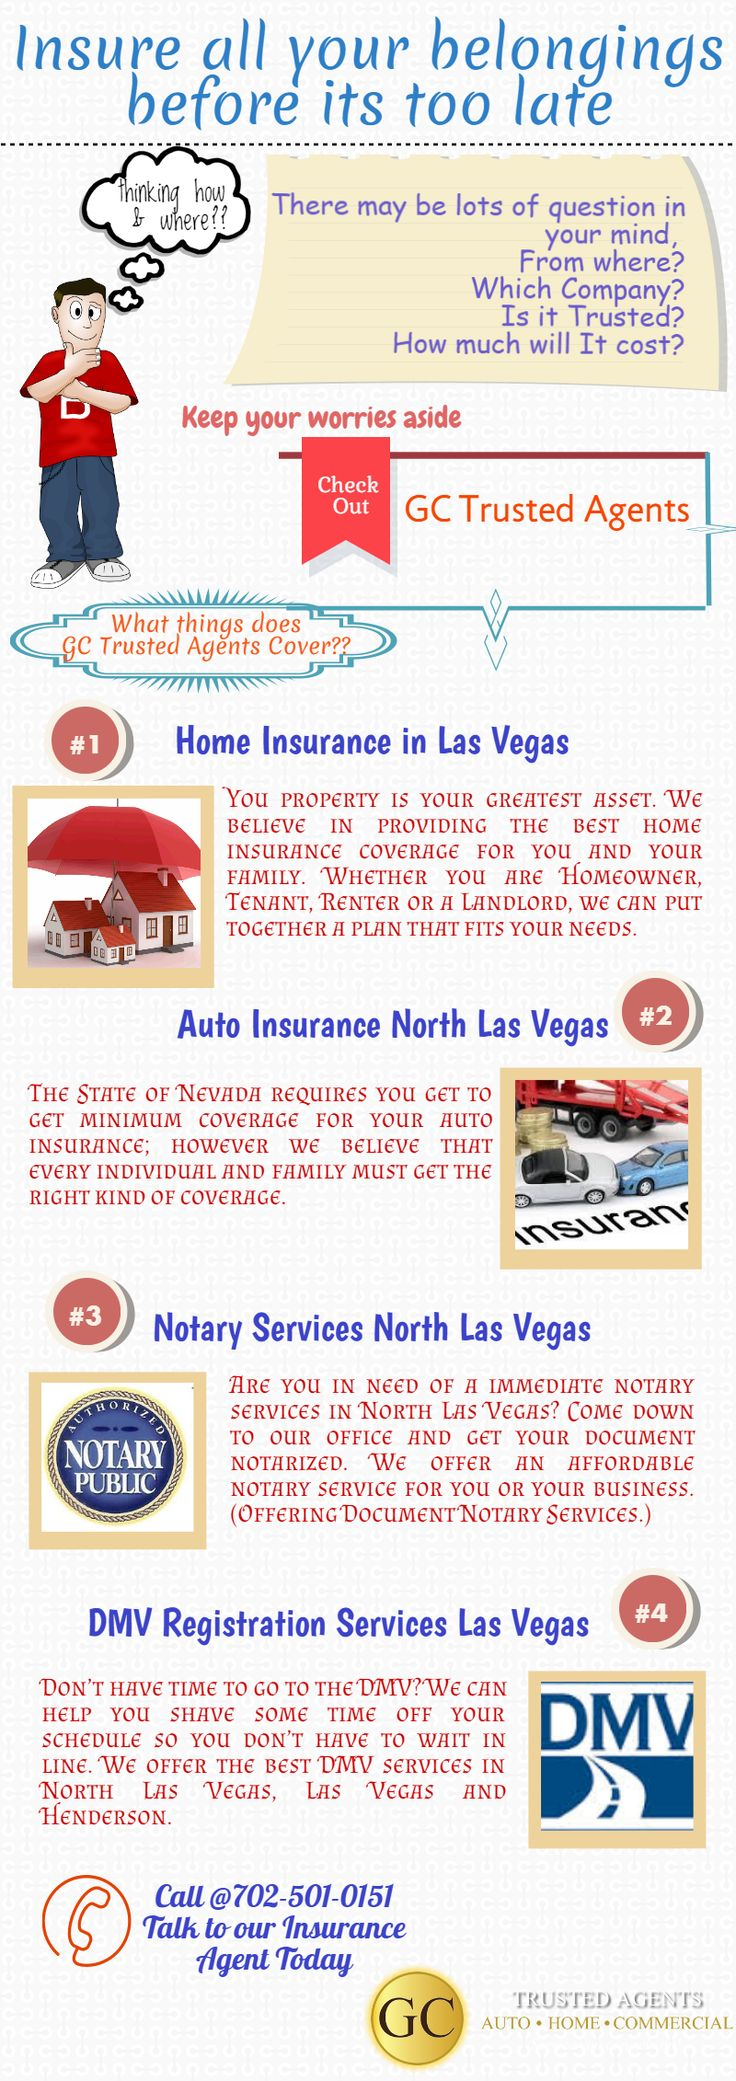 Get all types of insurance policies and other services